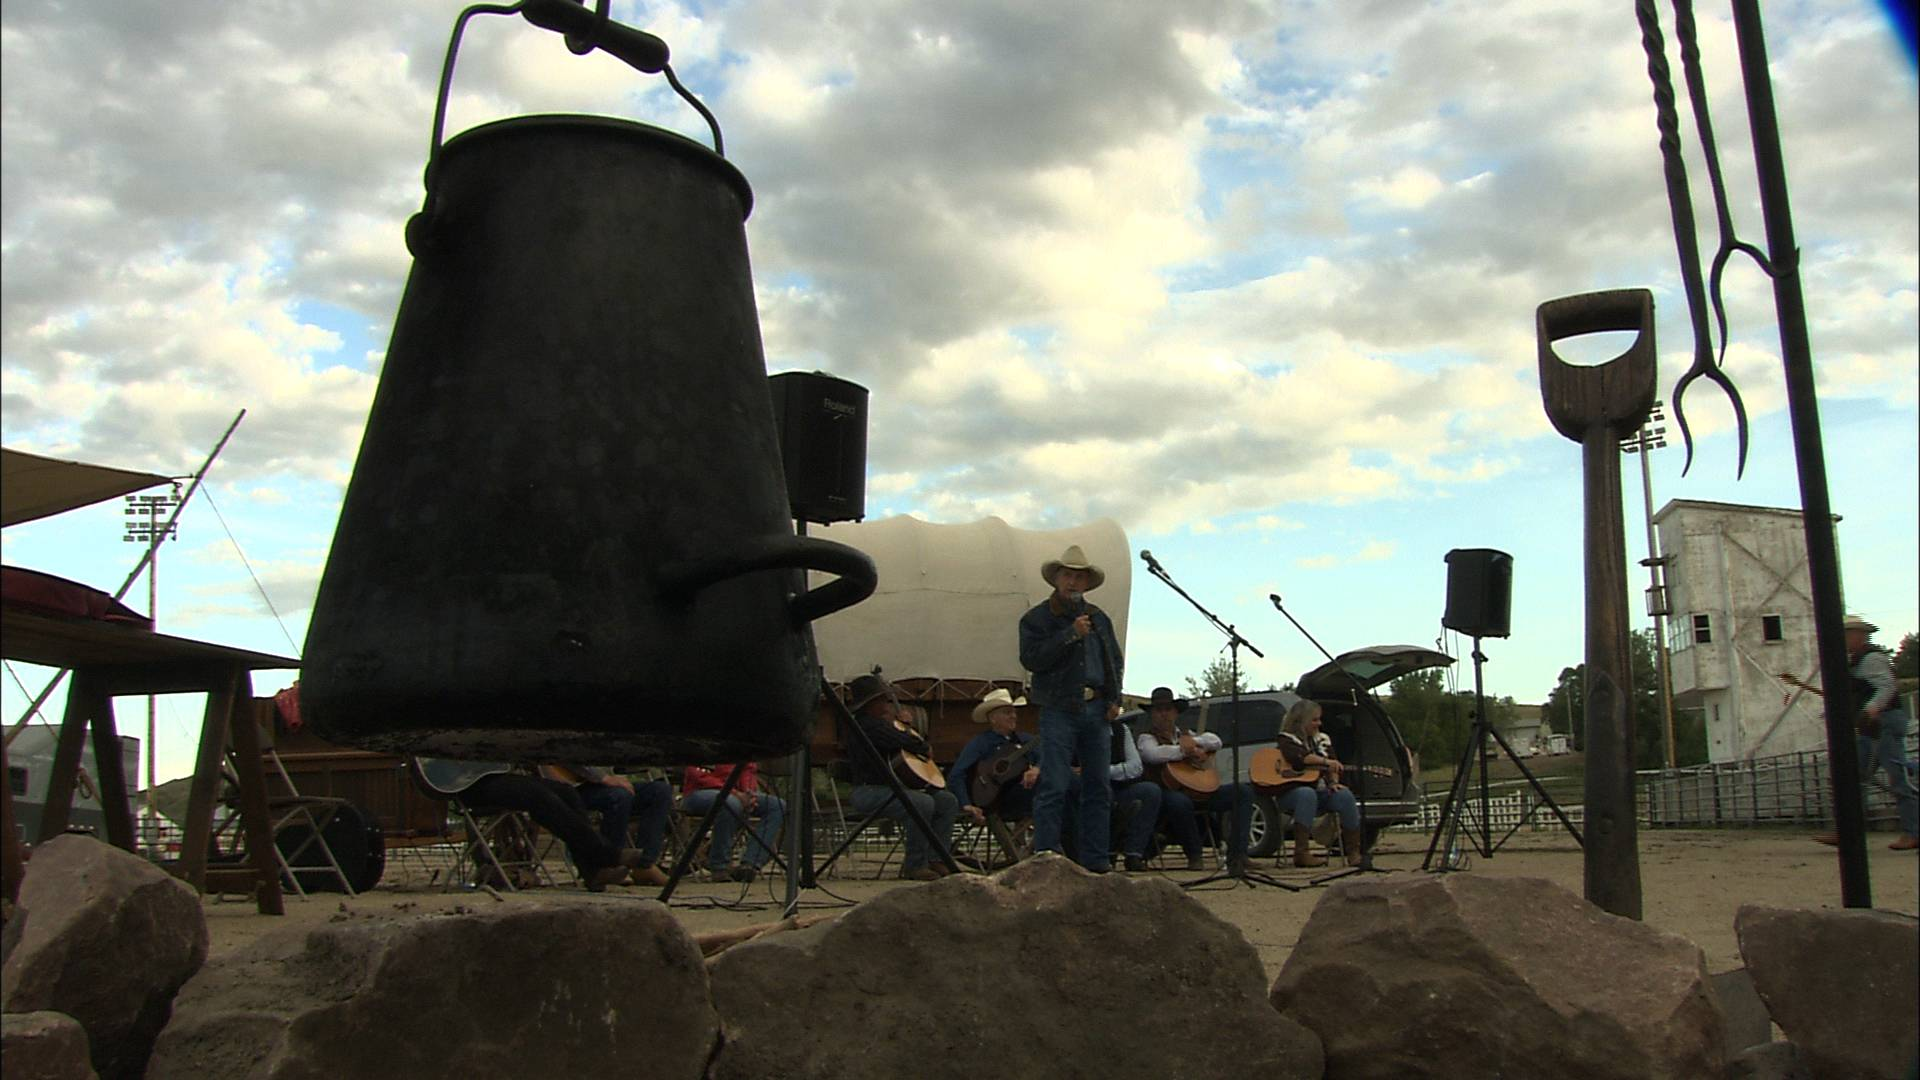 Cowboy poetry at the Western Heritage Festival in Fort Pierre